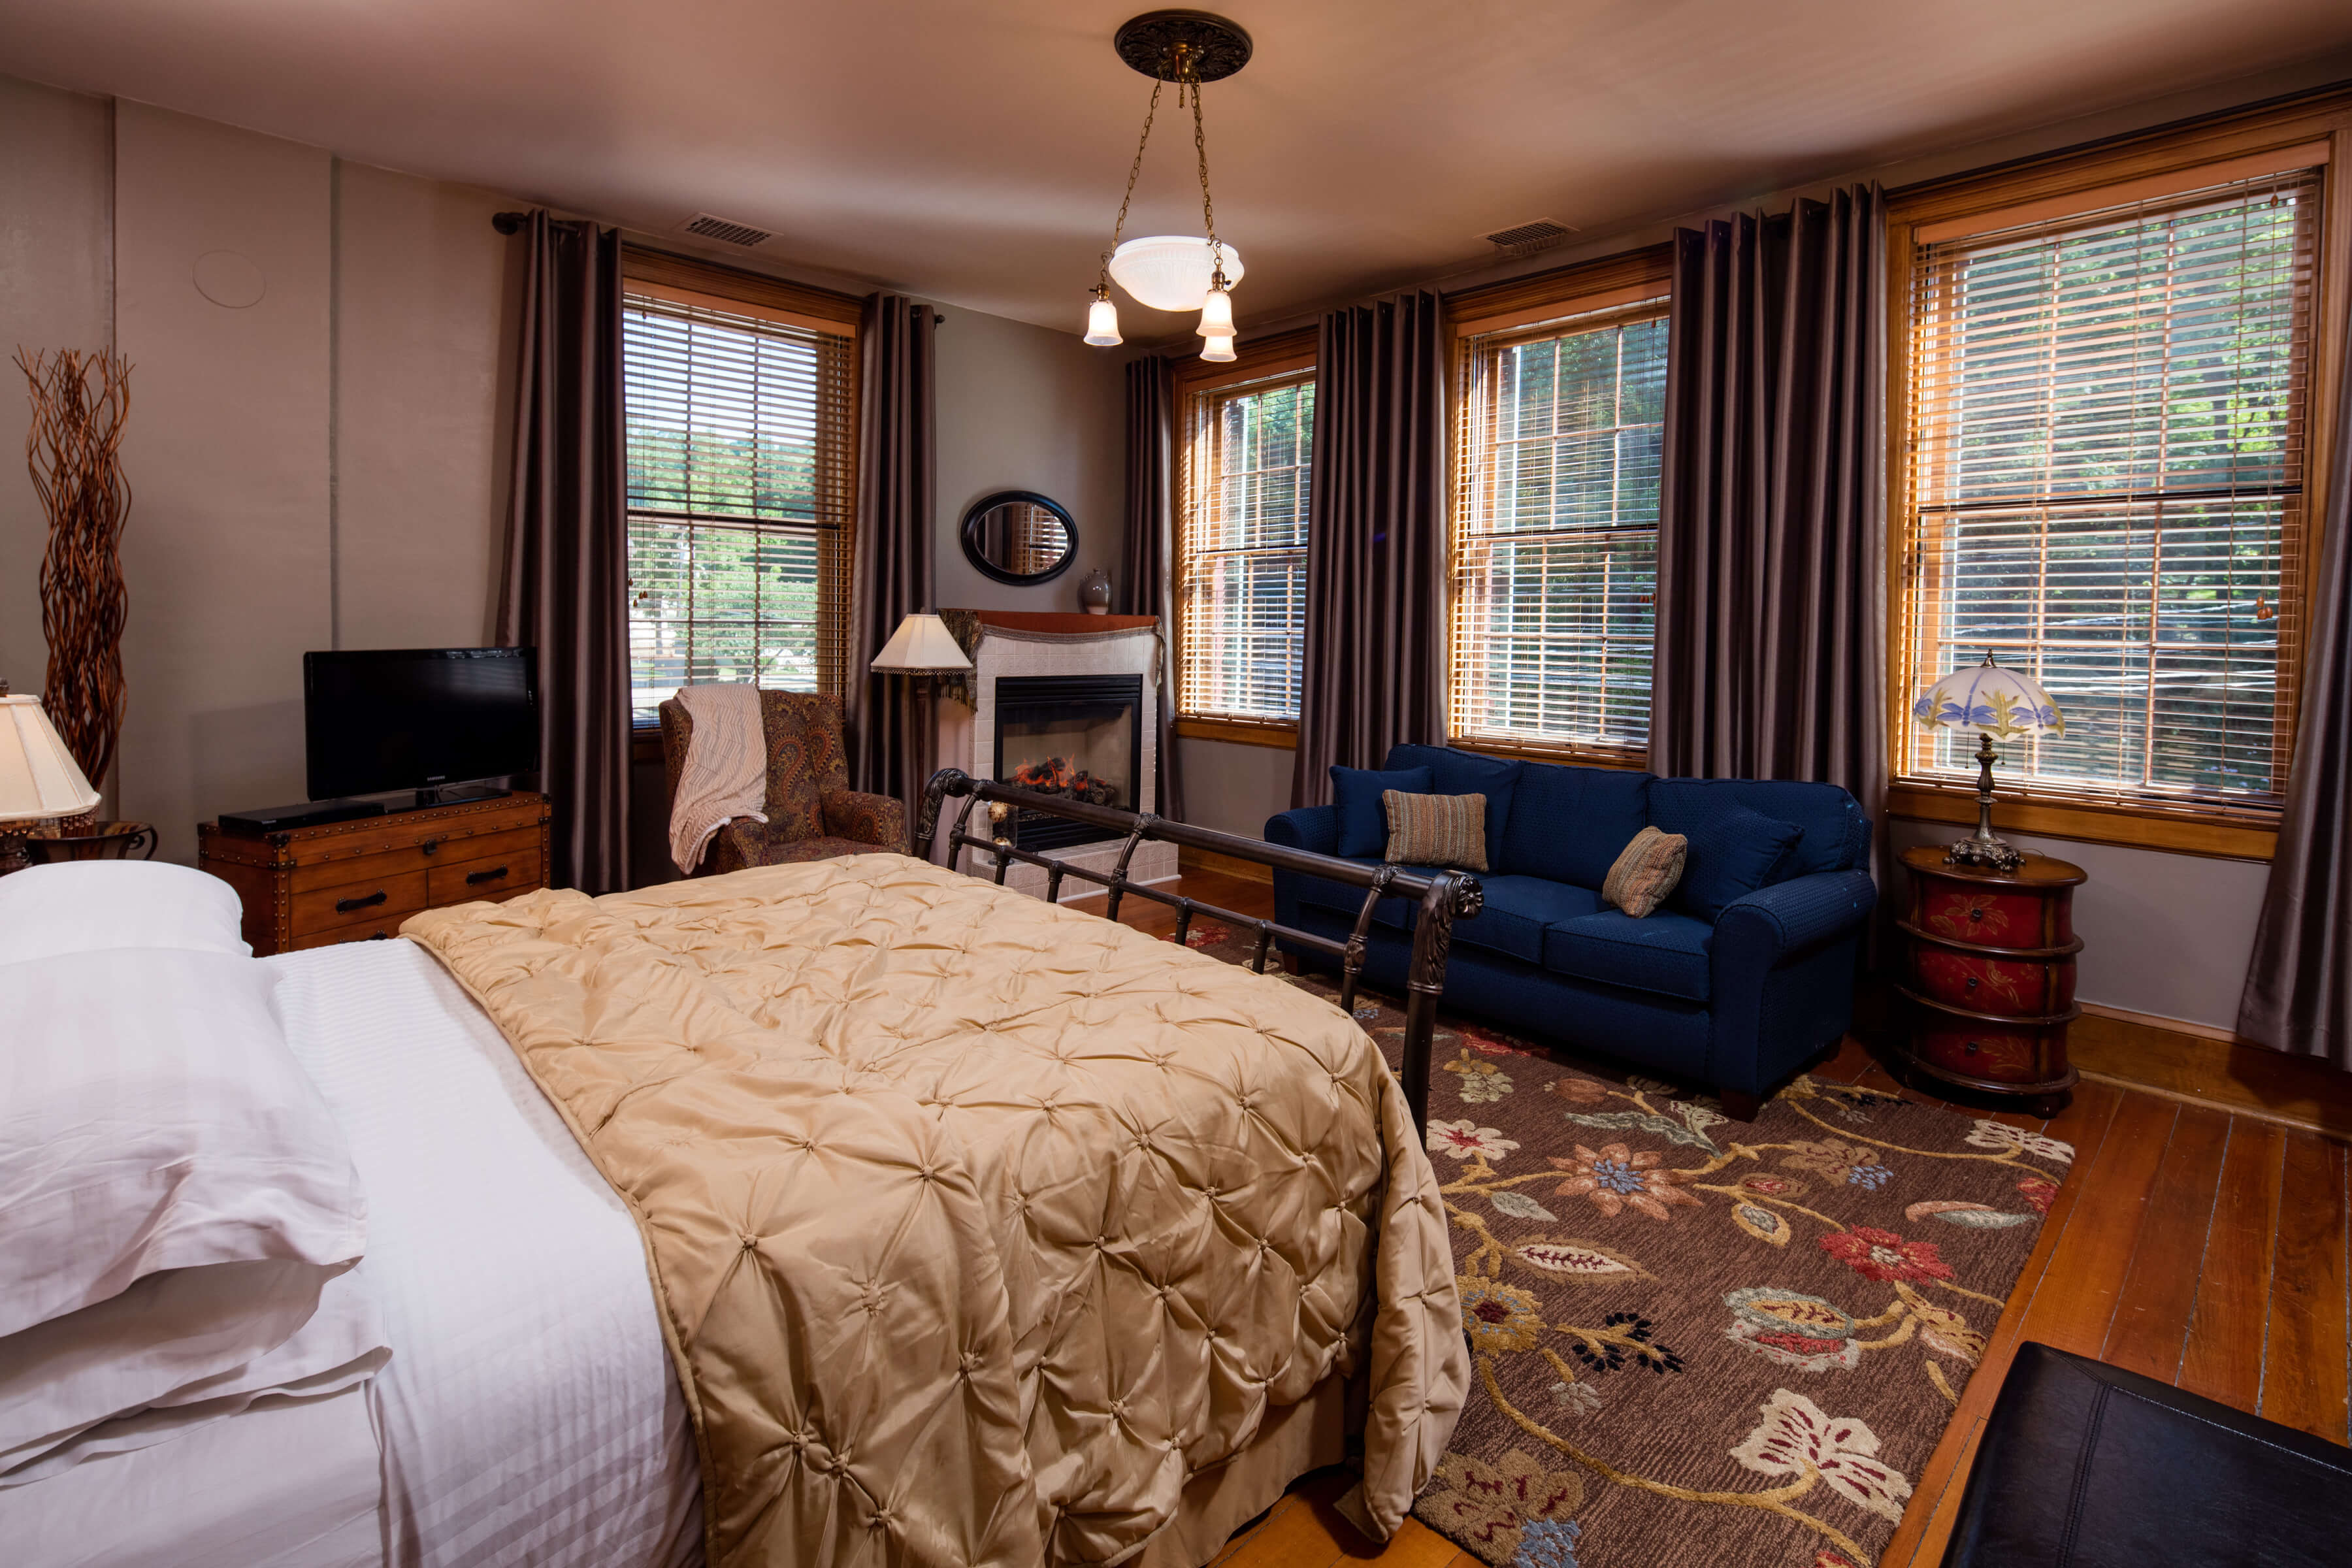 B&b Houses Bed And Breakfast Galena Il | Galena Il B&b | Farmers